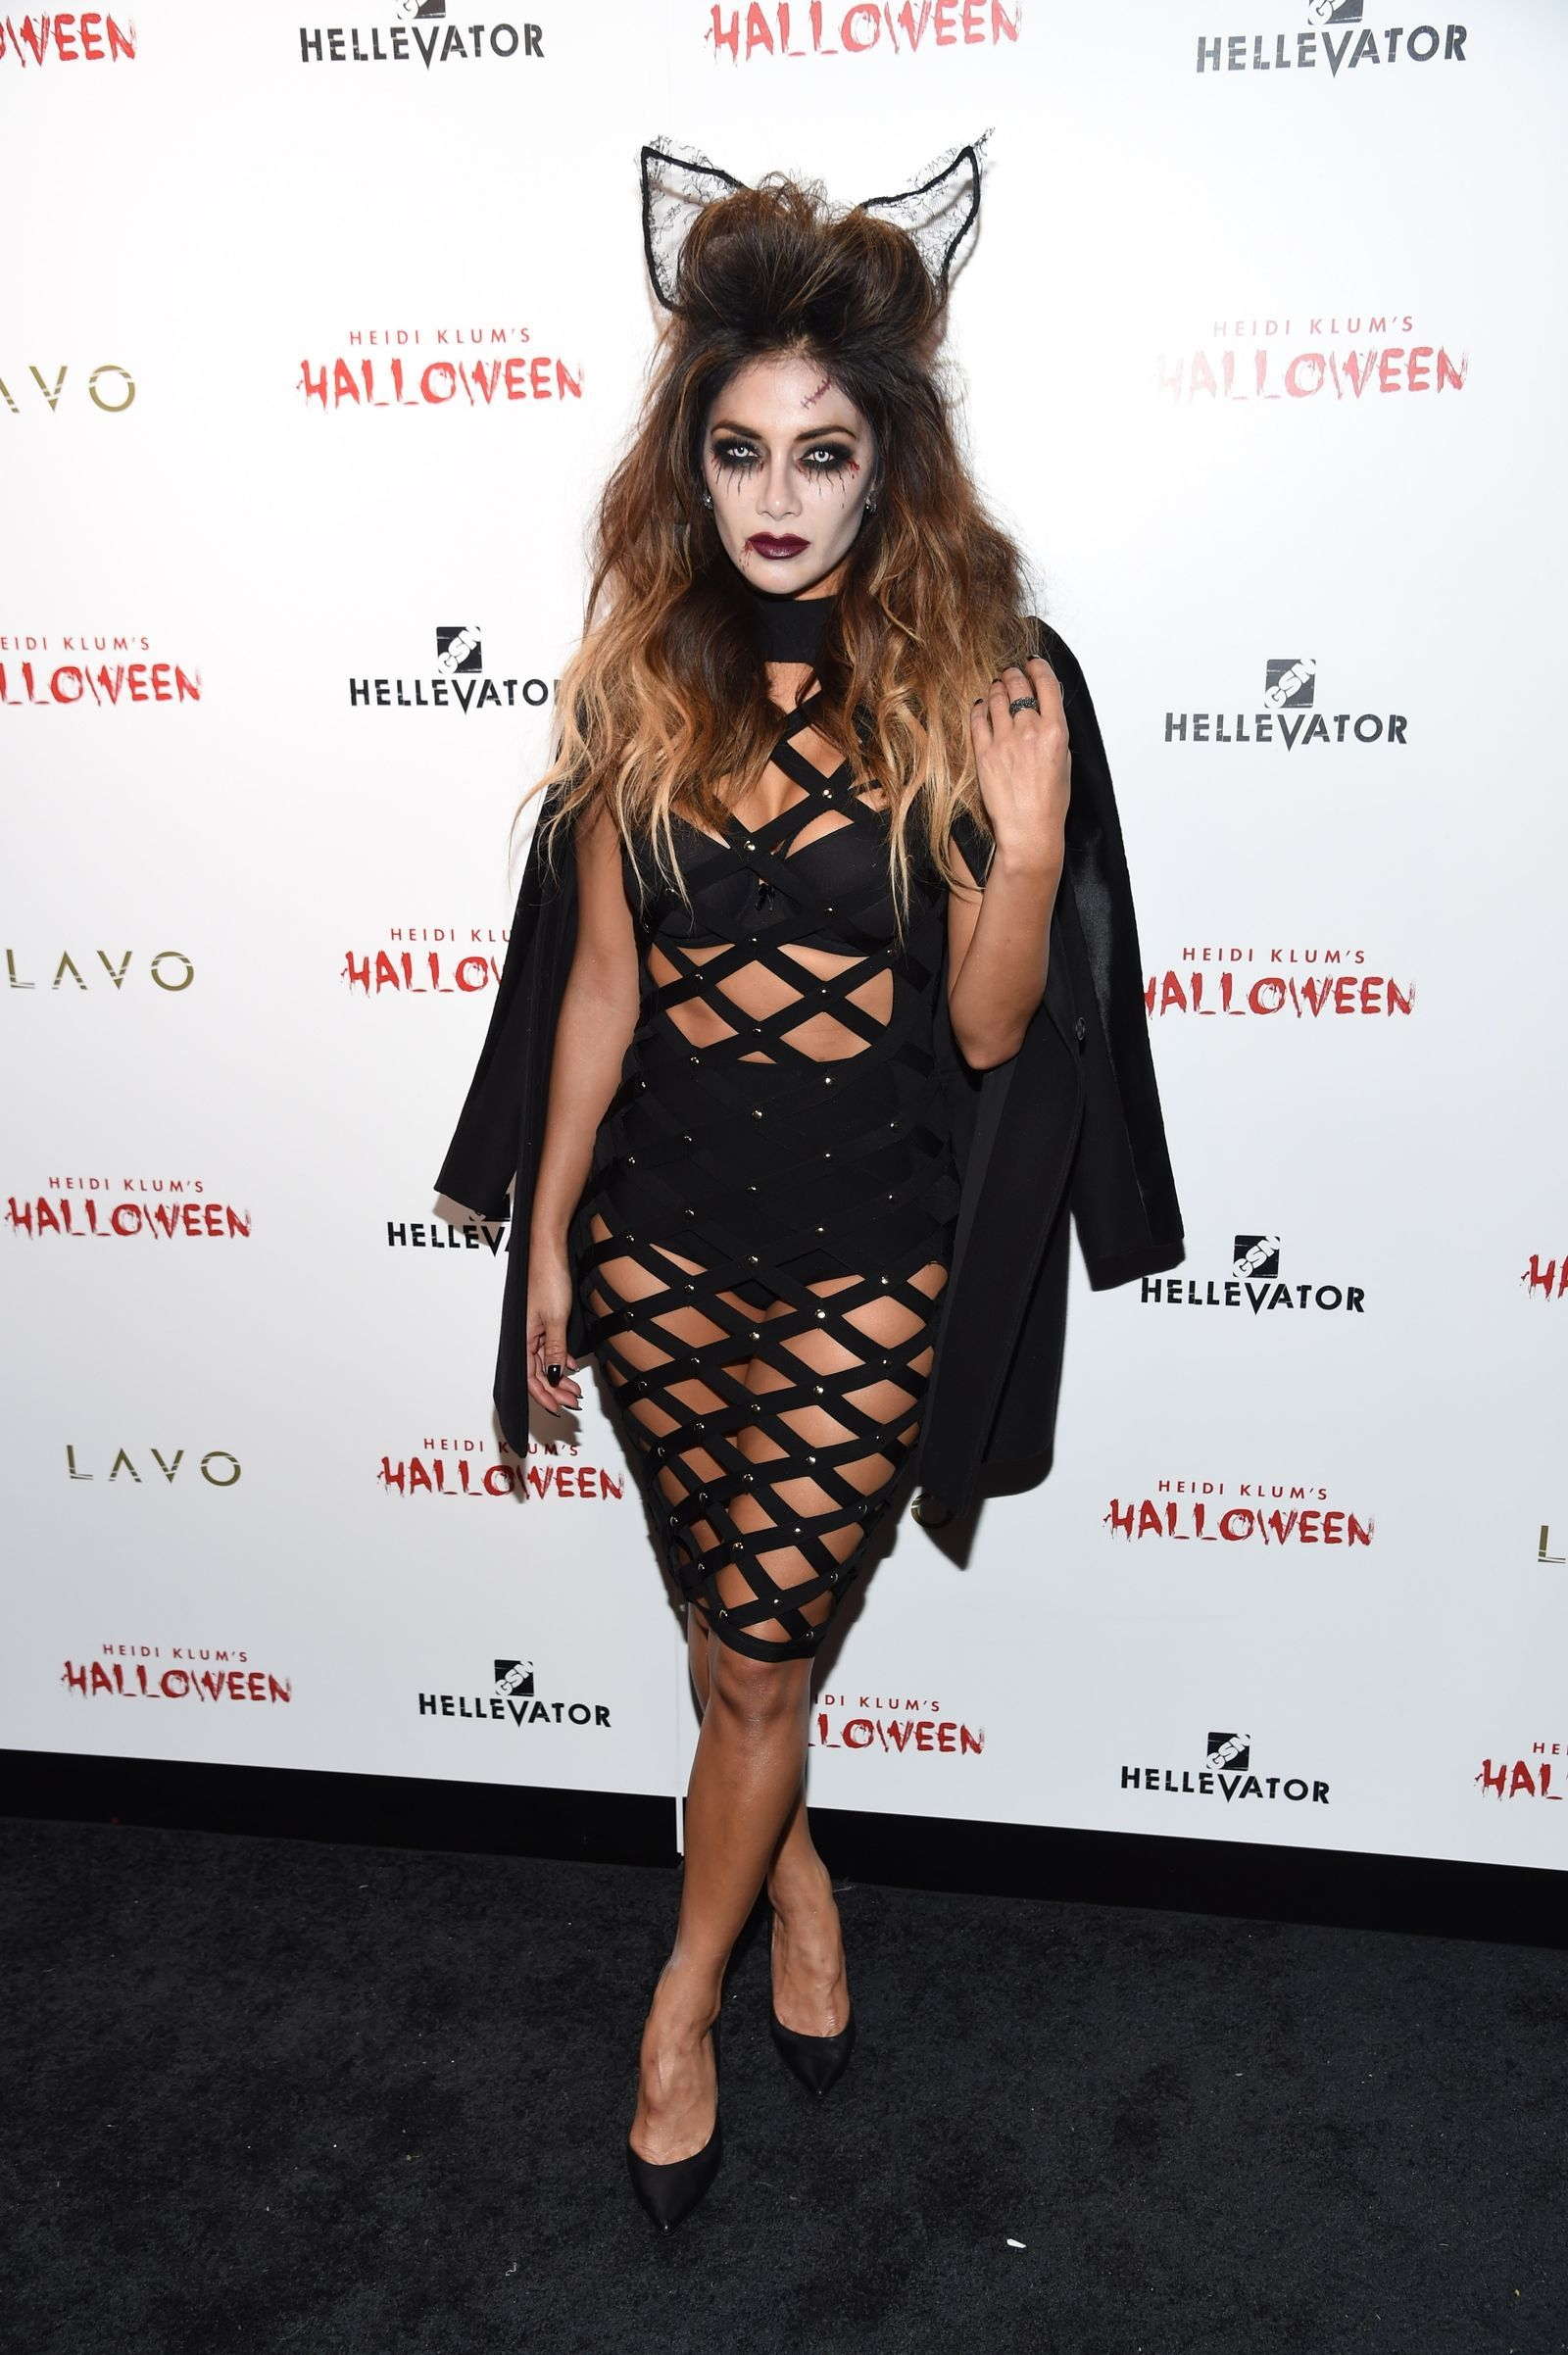 Nicole Scherzinger Halloween Costume.The Best Celebrity Halloween Costumes Of All Time Halloween